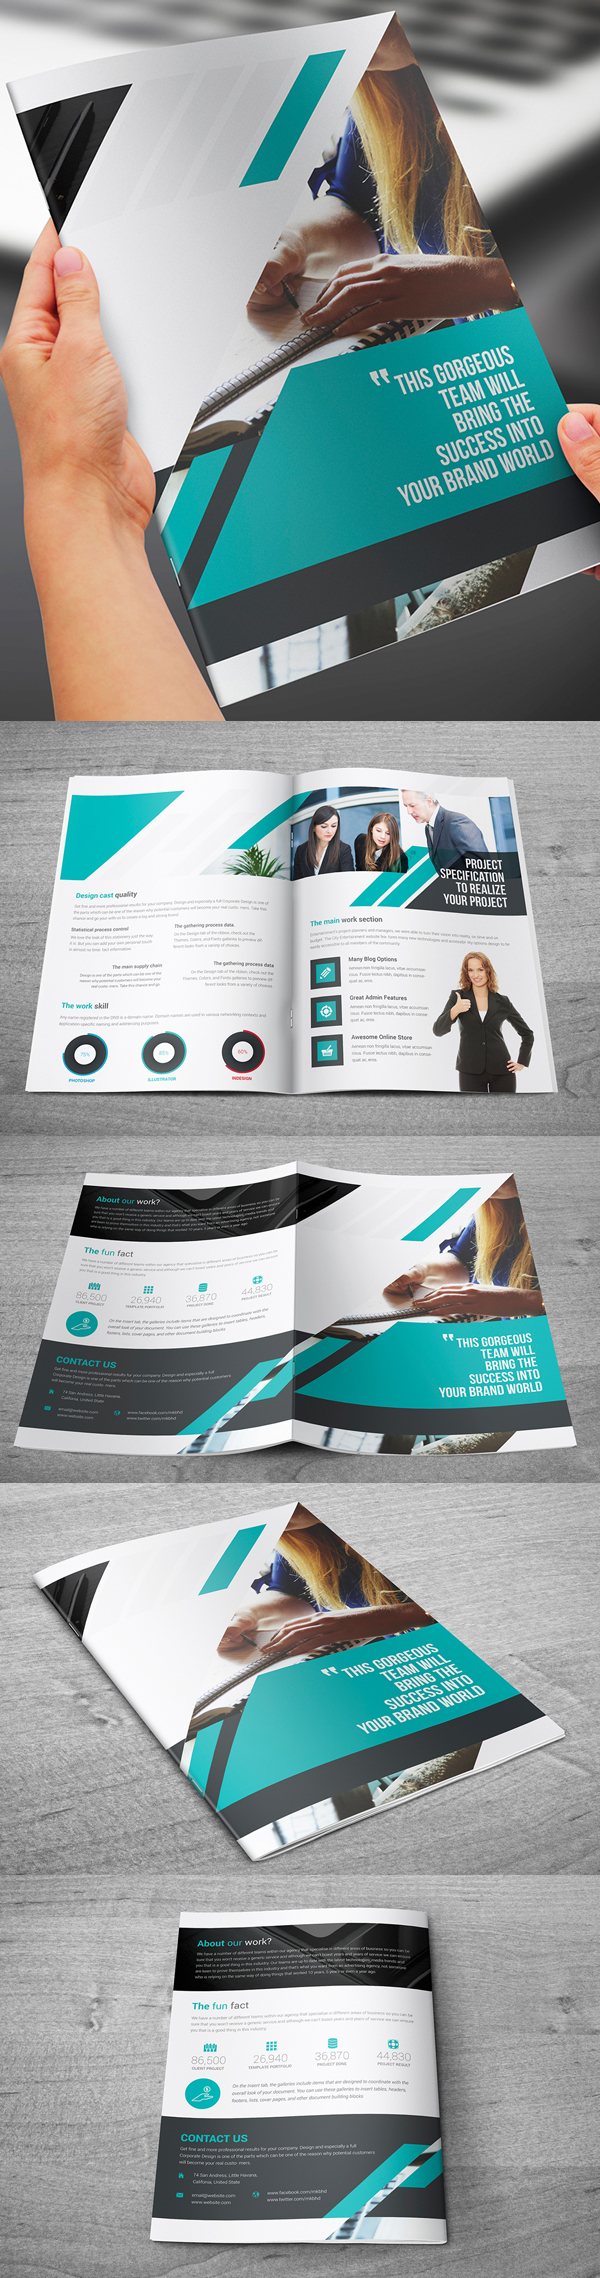 Lovely 1 Page Resumes Tiny 1 Week Calendar Template Regular 1099 Agreement Template 11 Vuze Search Templates Young 15 Year Old Resume Example Red2 Week Notice Templates New Catalog Brochure Design Templates | Design | Graphic Design ..